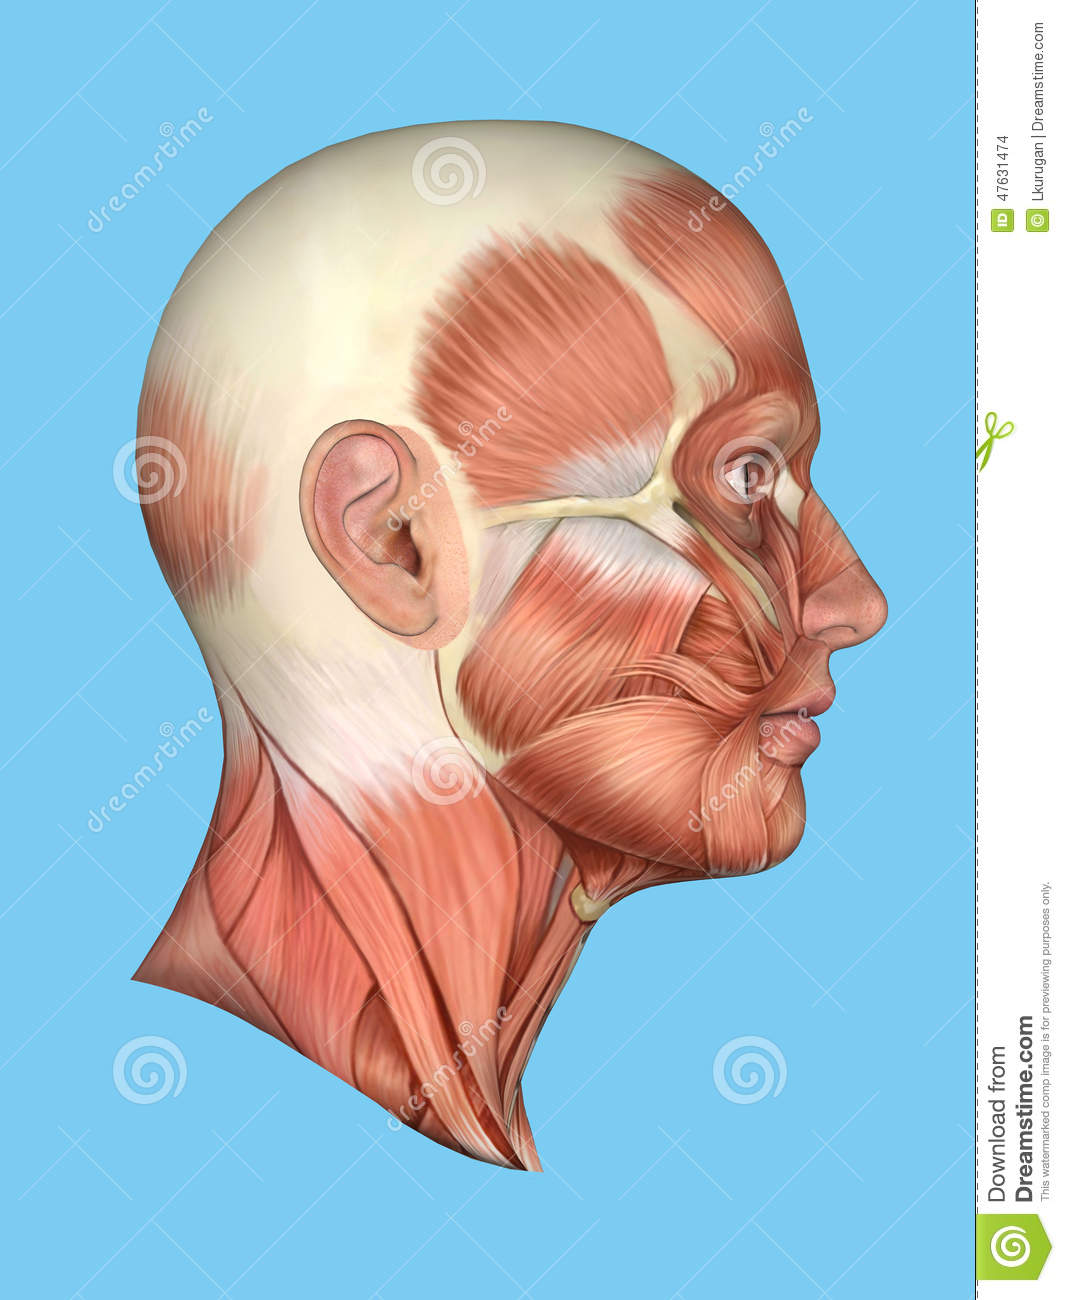 Anatomy Side View Of Major Face Muscles Of A Man Stock Illustration